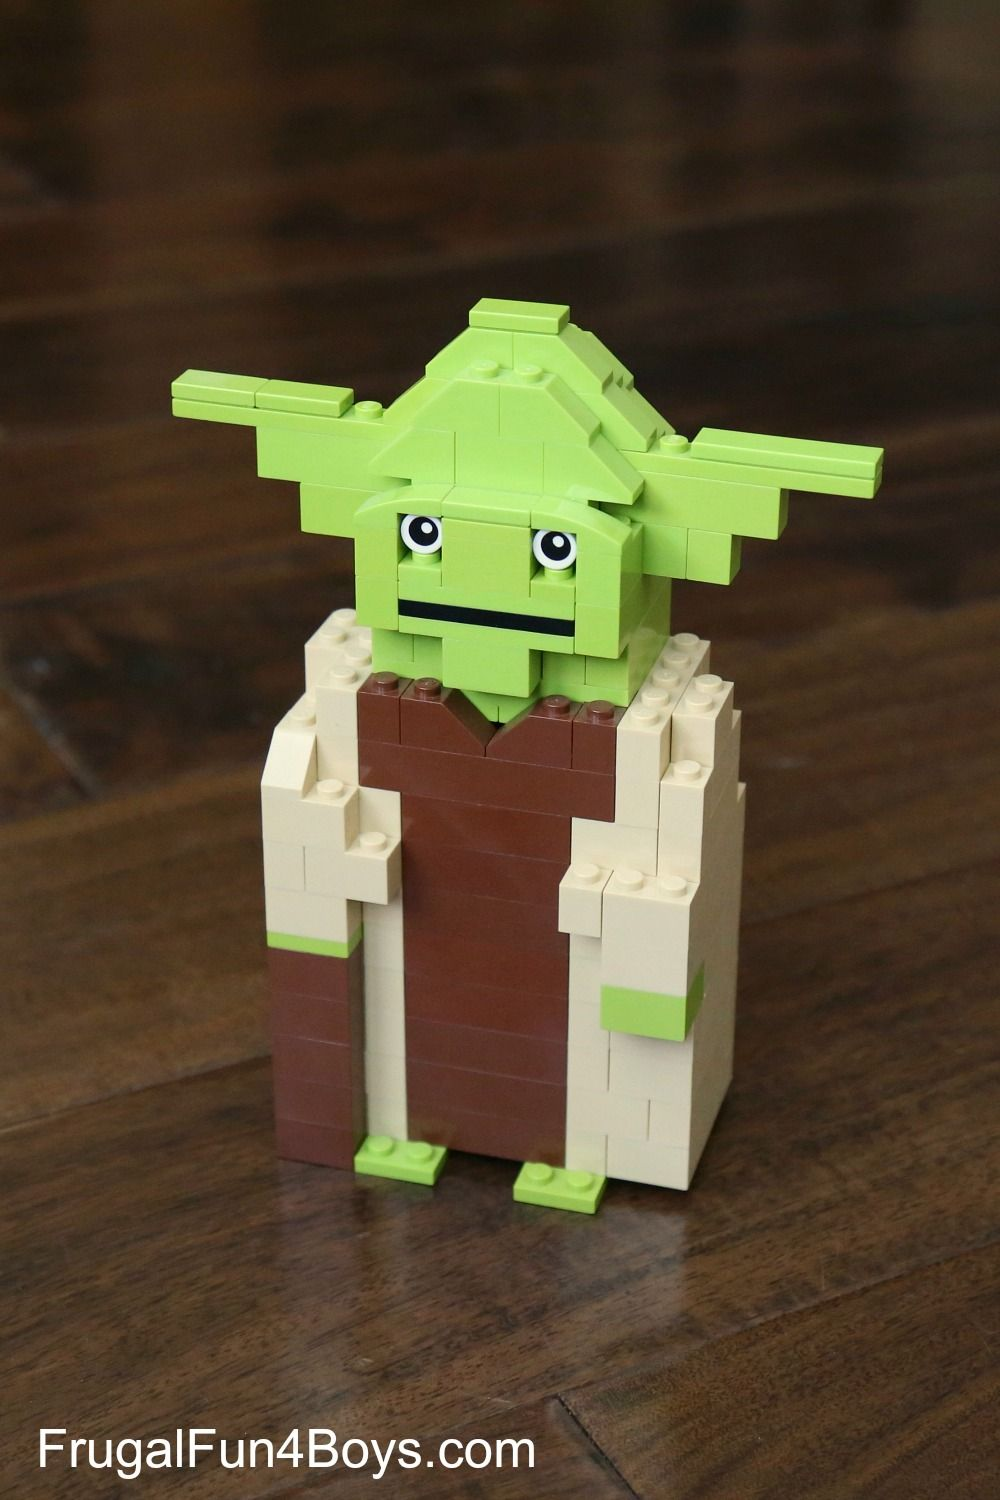 lego star wars yoda building instructions | frugal fun for boys and